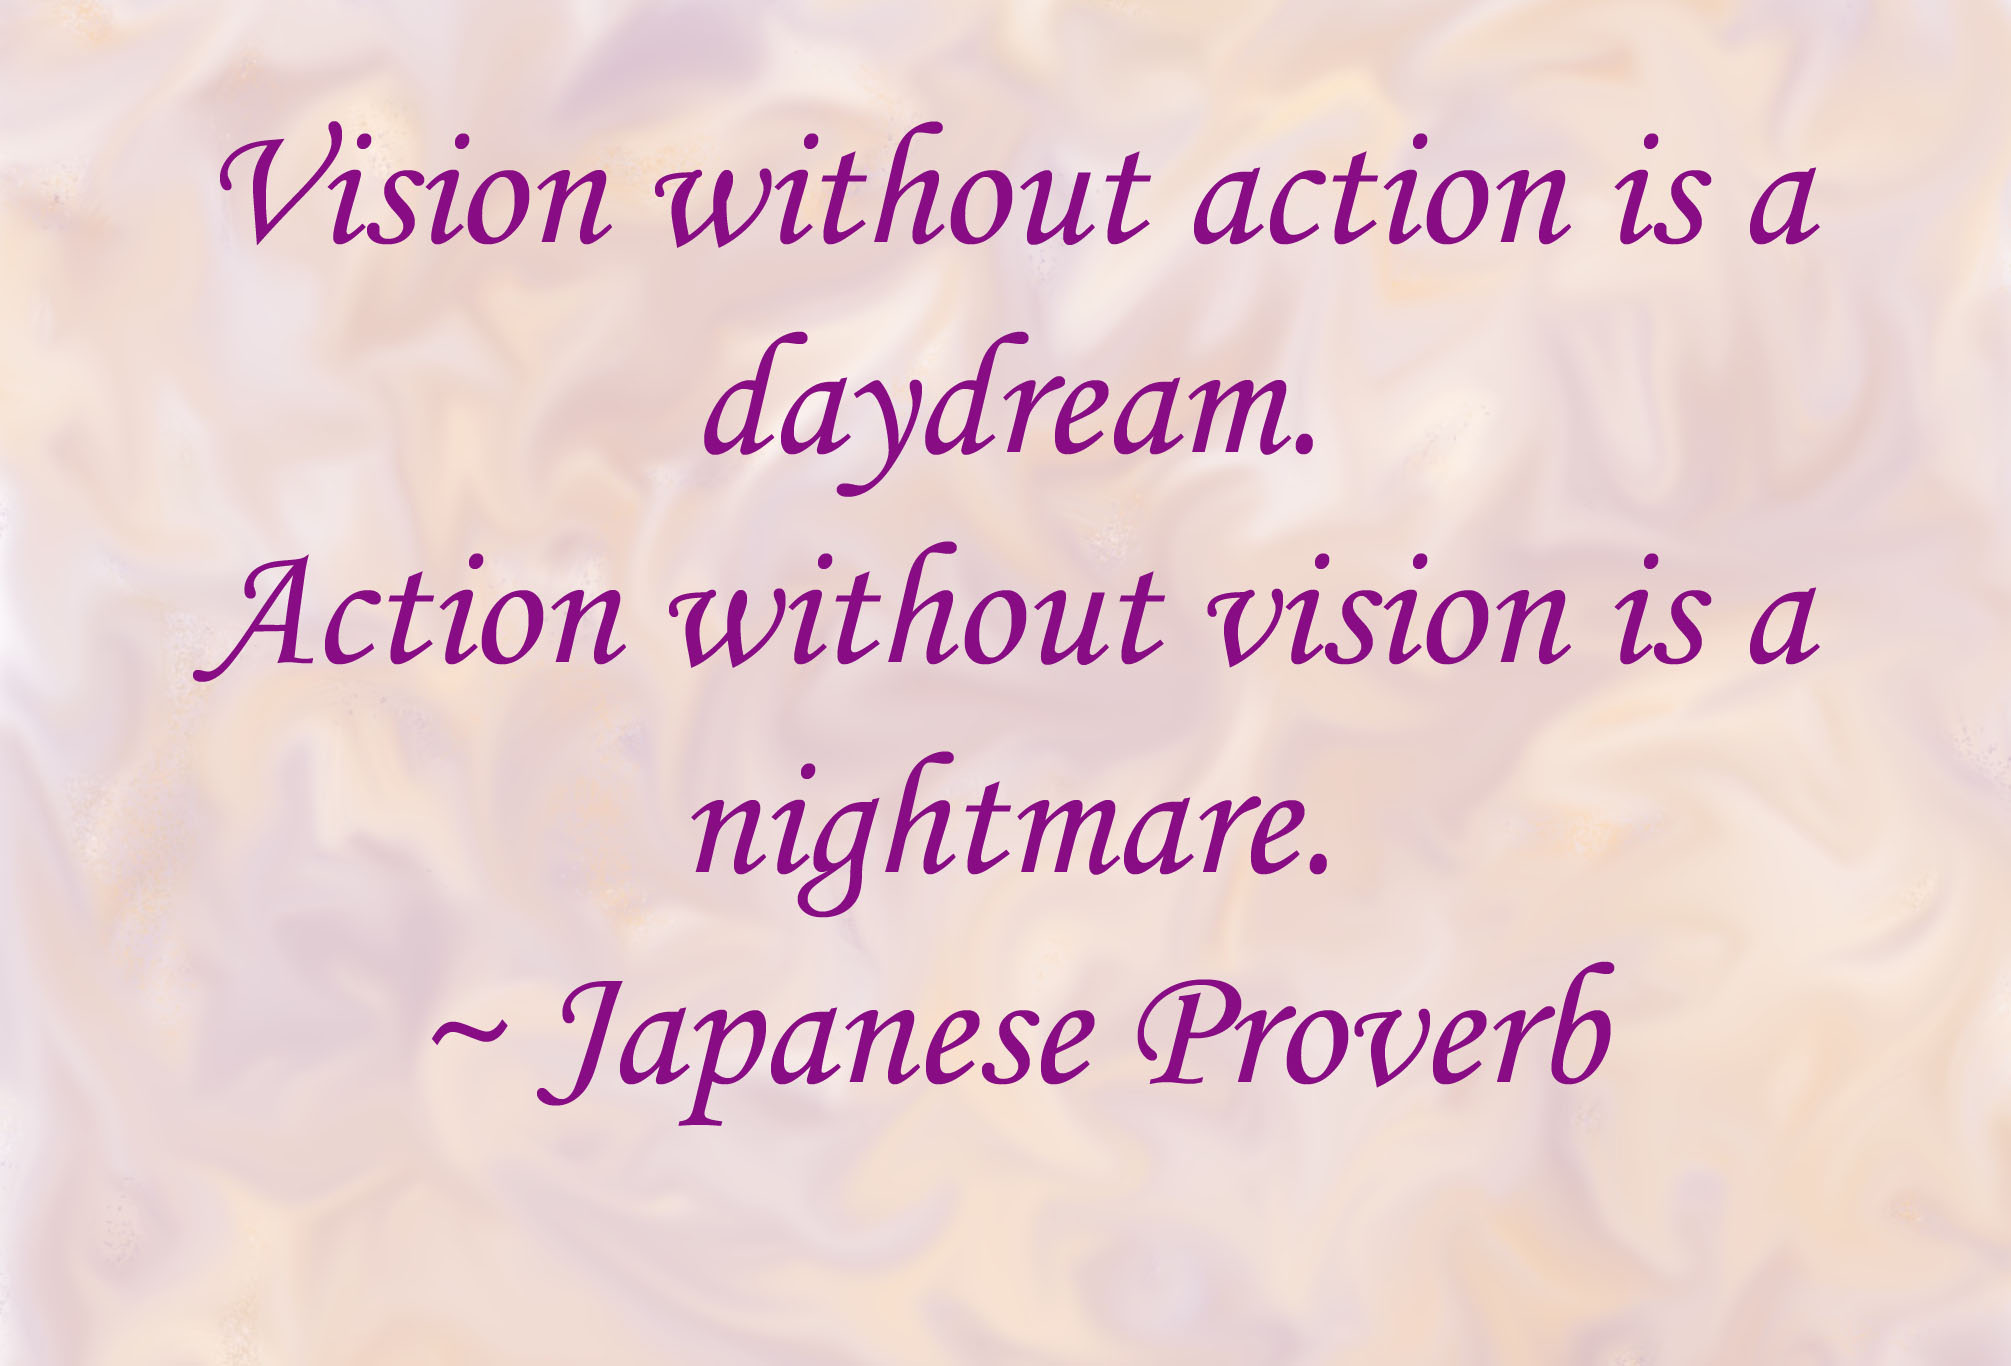 """""""Vision without action is a daydream. Action without vision is a nightmare."""" - Japanese proverb written on a painted background."""